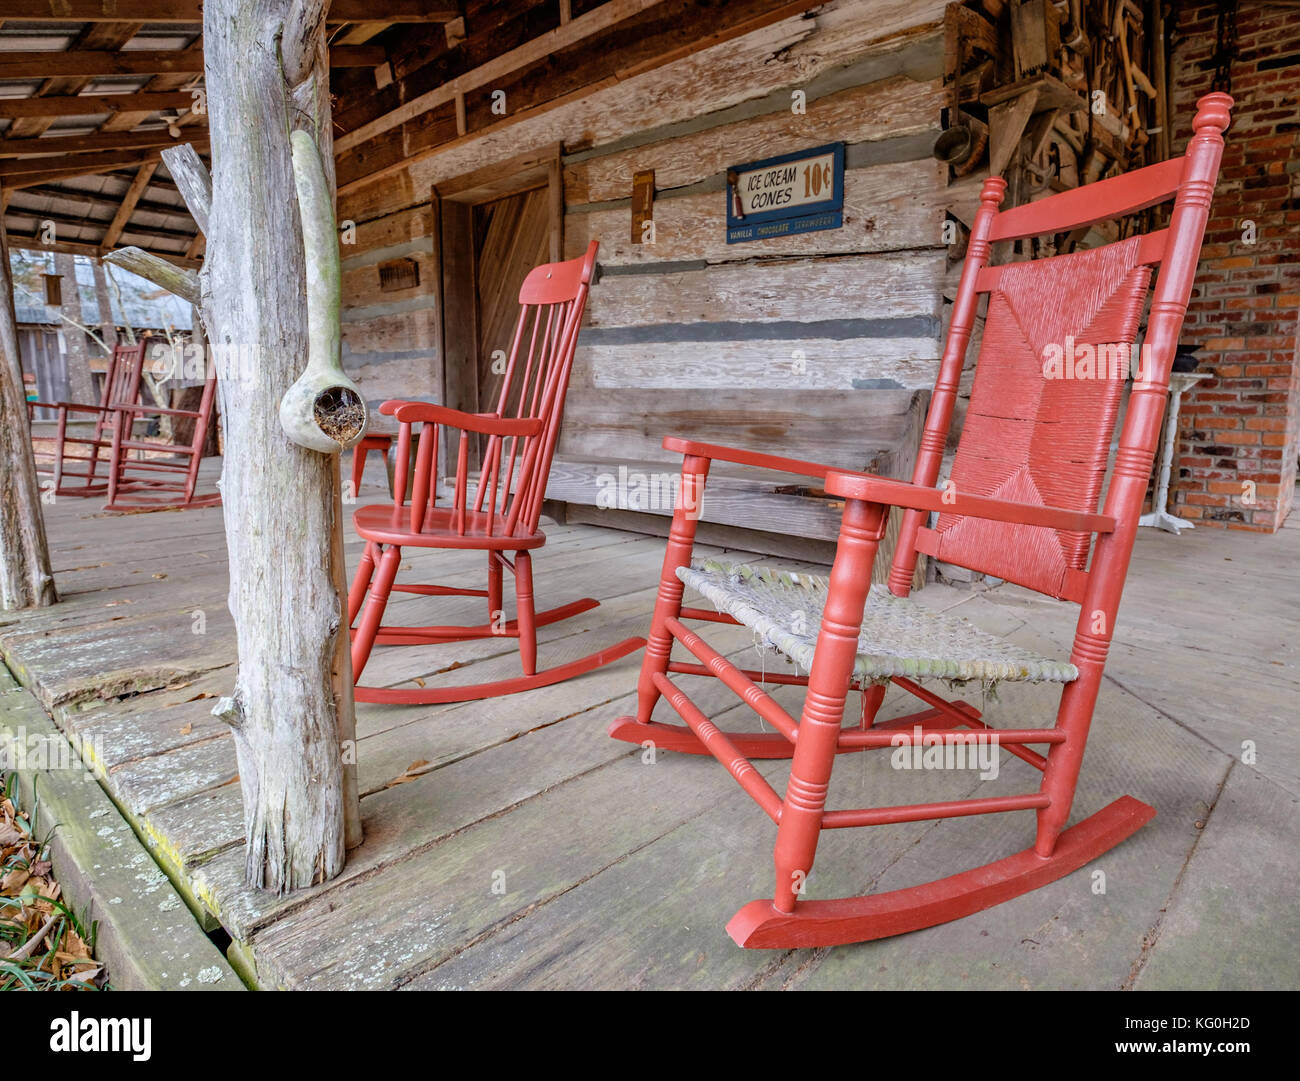 Old Fashioned White Rocking Chairs On The Front Porch Of An Old Cabin In  Rural Alabama, USA